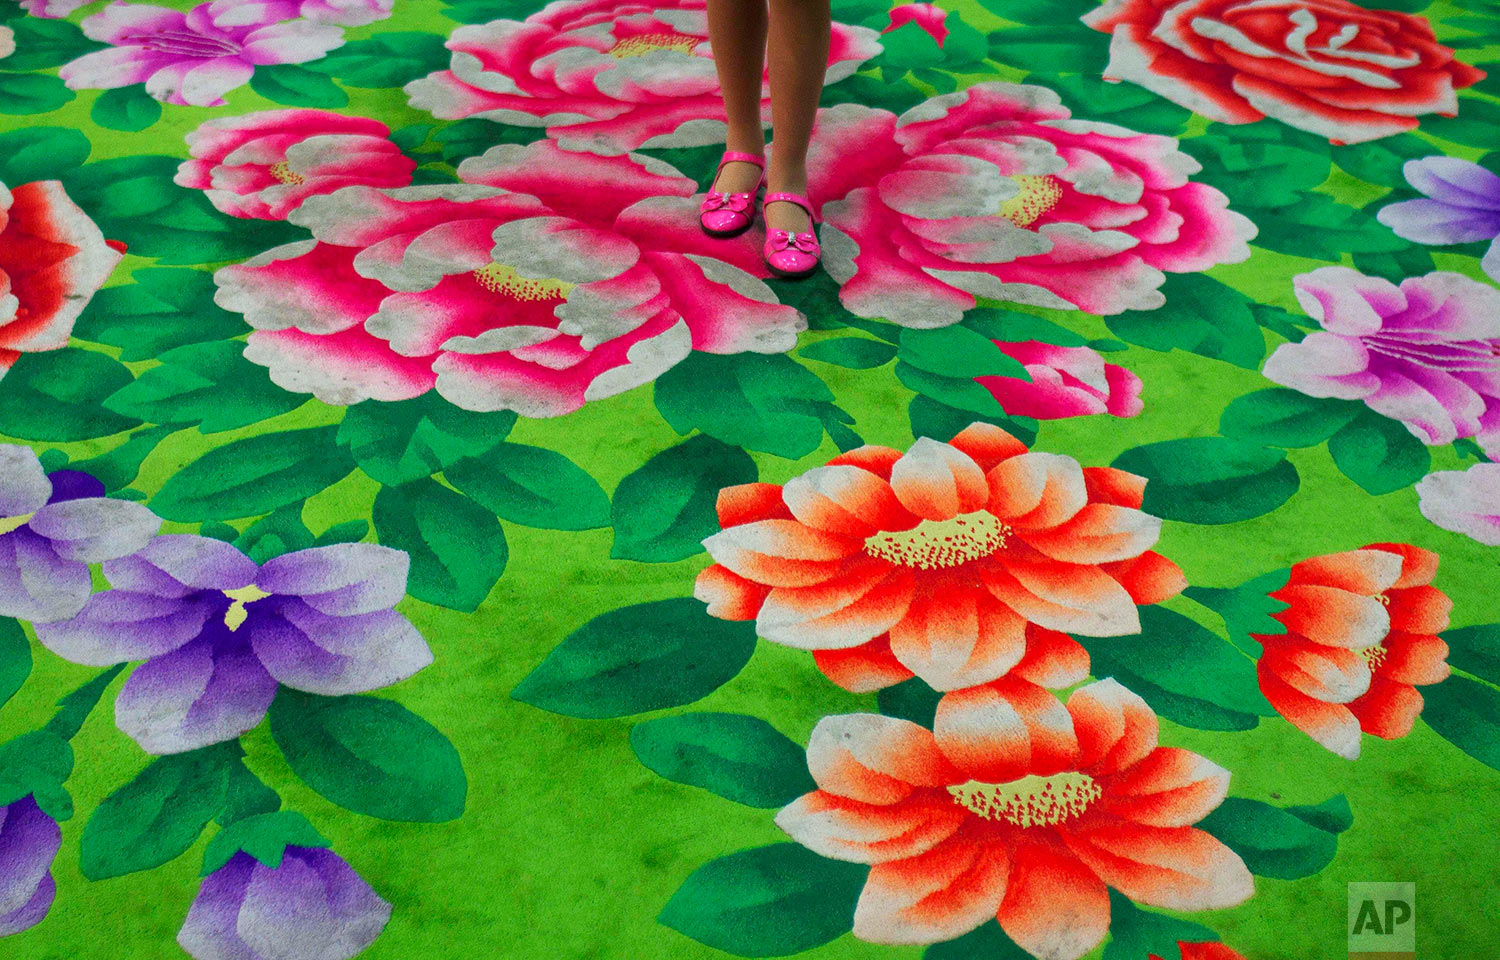 A young girl stands on floral-print carpet inside the Pyongyang Children's Palace in Pyongyang, North Korea, on April 14, 2011. The large facility teaches performance arts, fine arts, and sports as extracurricular classes to students in Pyongyang. (AP Photo/David Guttenfelder)